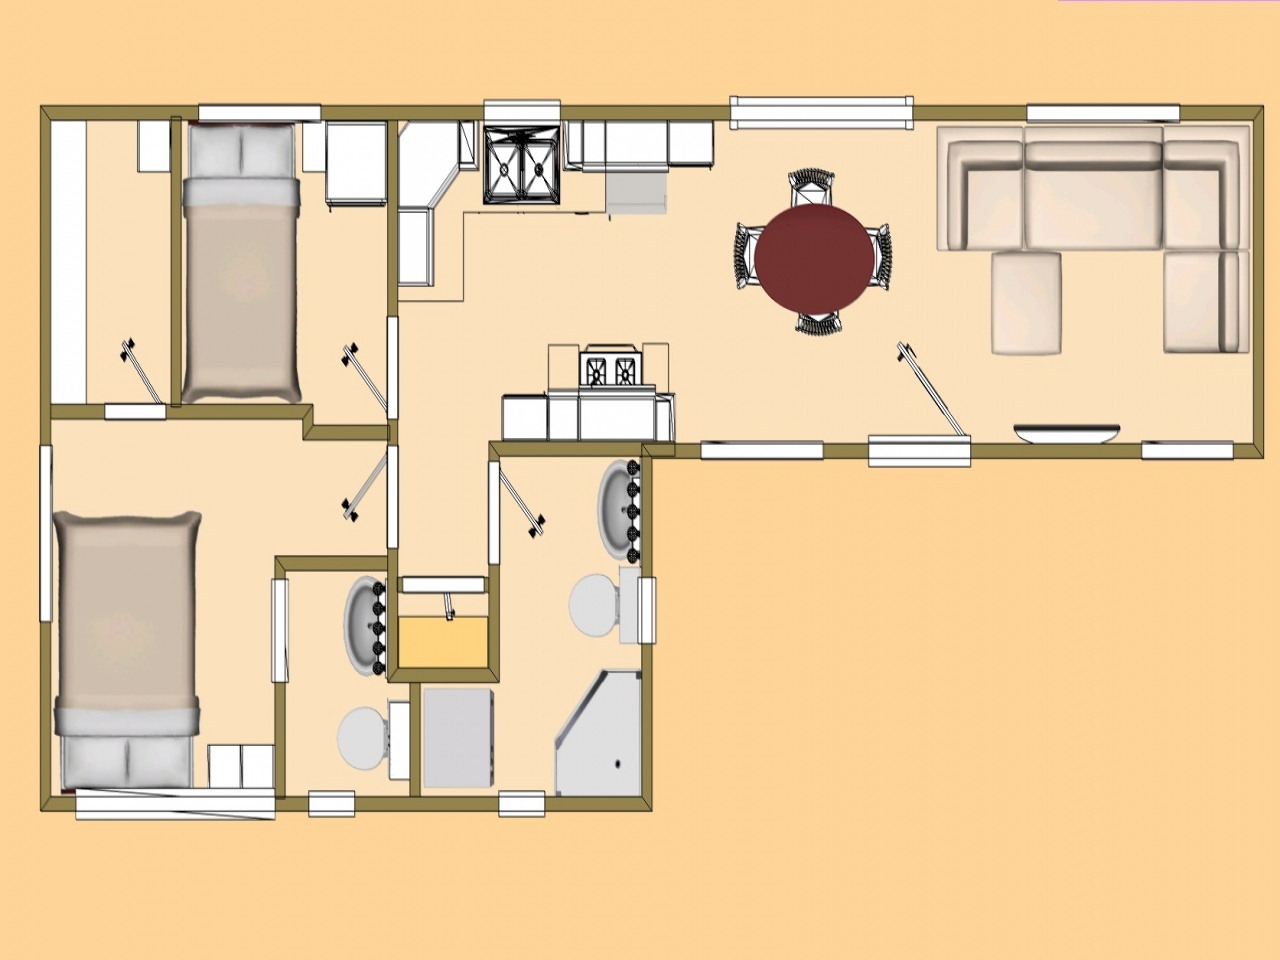 Shipping Container Garage Floor Plan: Shipping Container Homes Kits Shipping Container Home